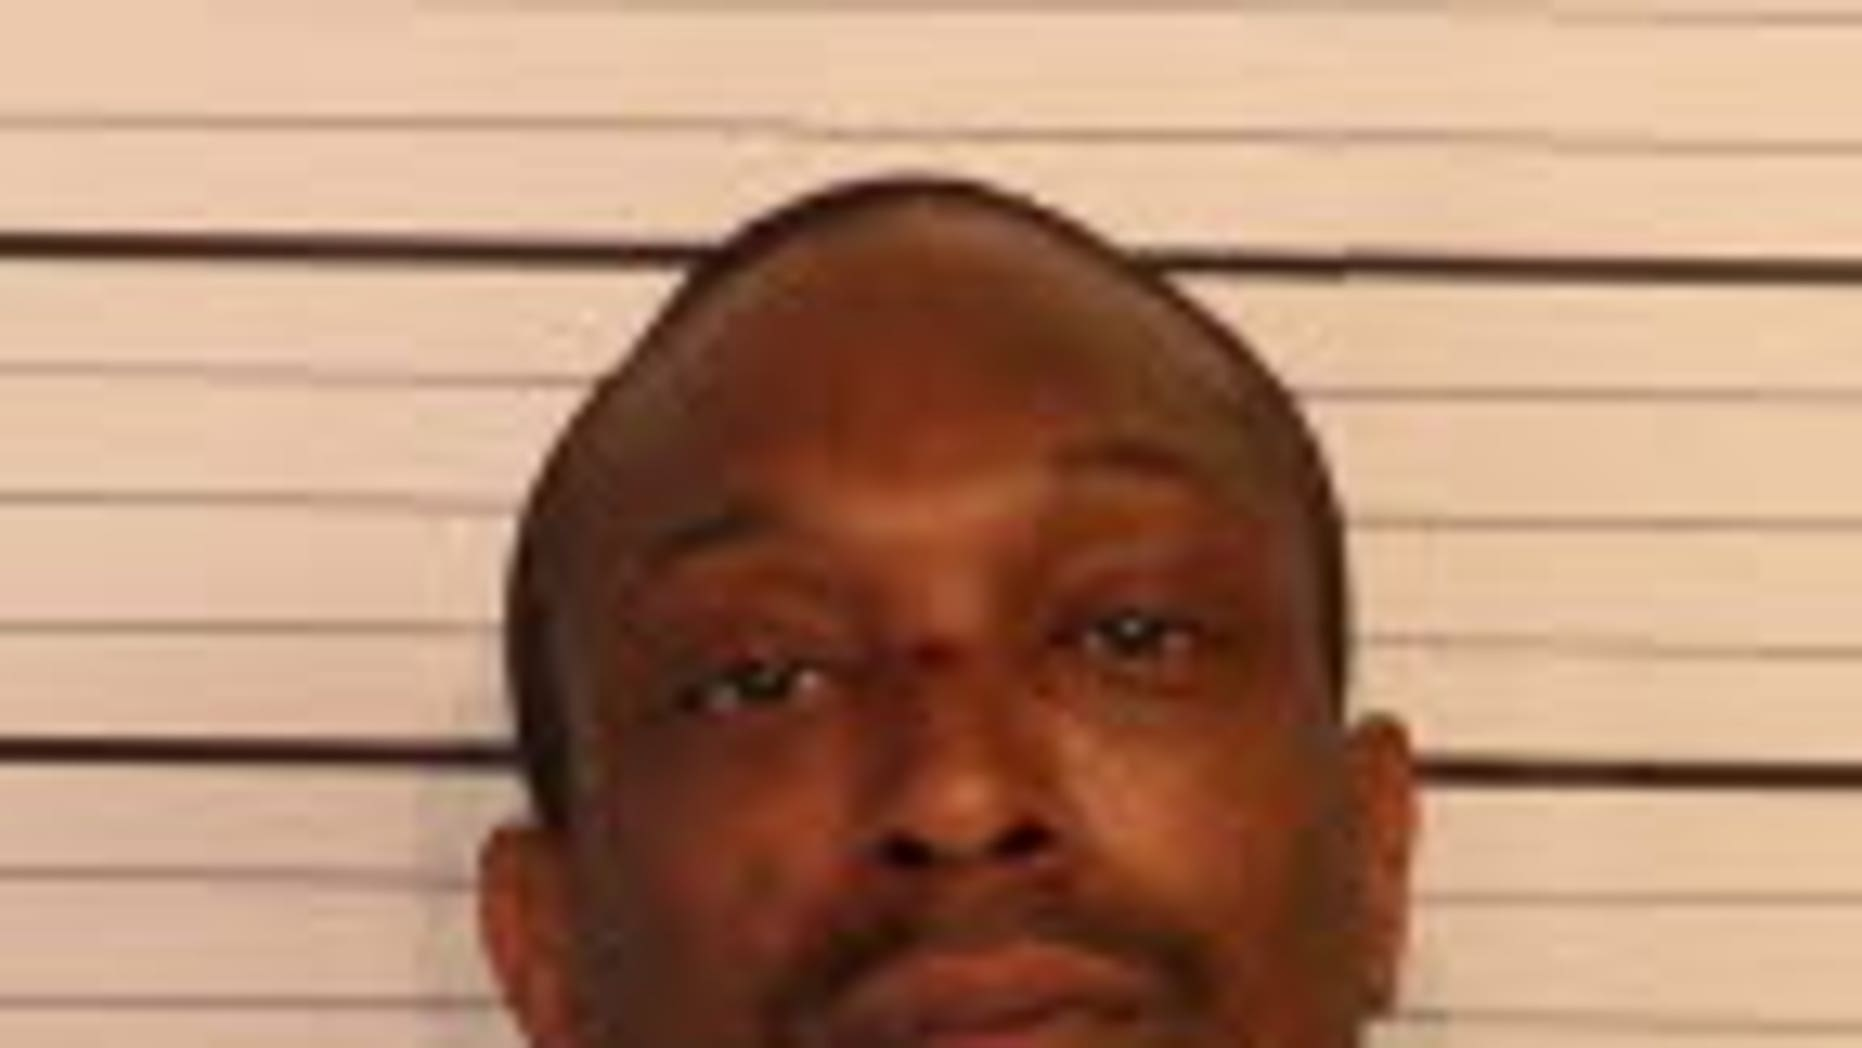 Santrez Traylor, 34, is accused of beating his girlfriend with a brick and repeatedly running over her body.